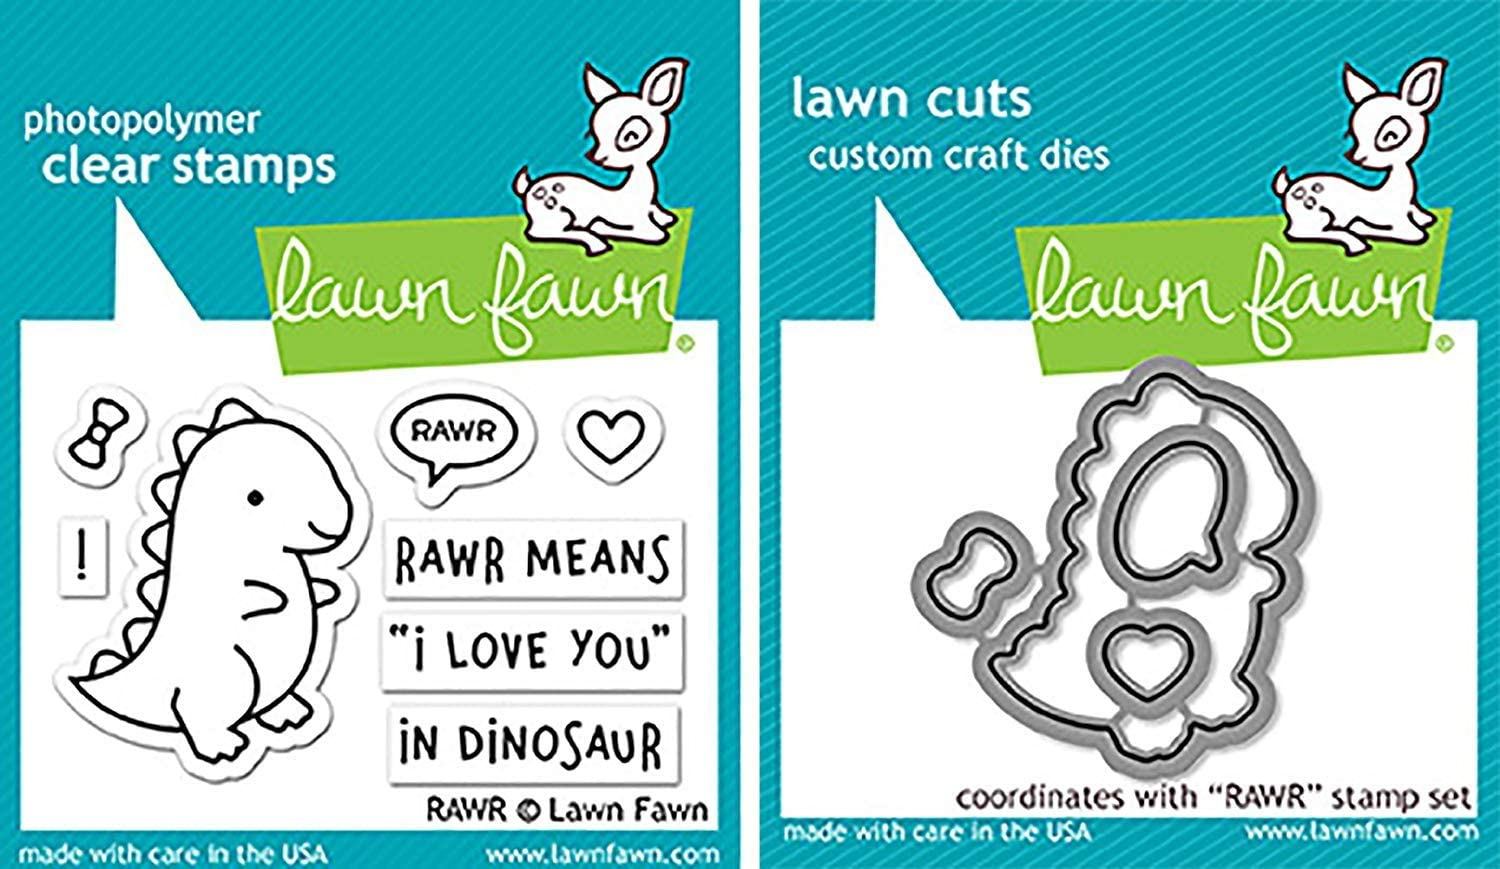 Lawn Fawn RAWR Clear Stamps and Dies Bundle LF1555 LF1556 (Set of 2 Items)